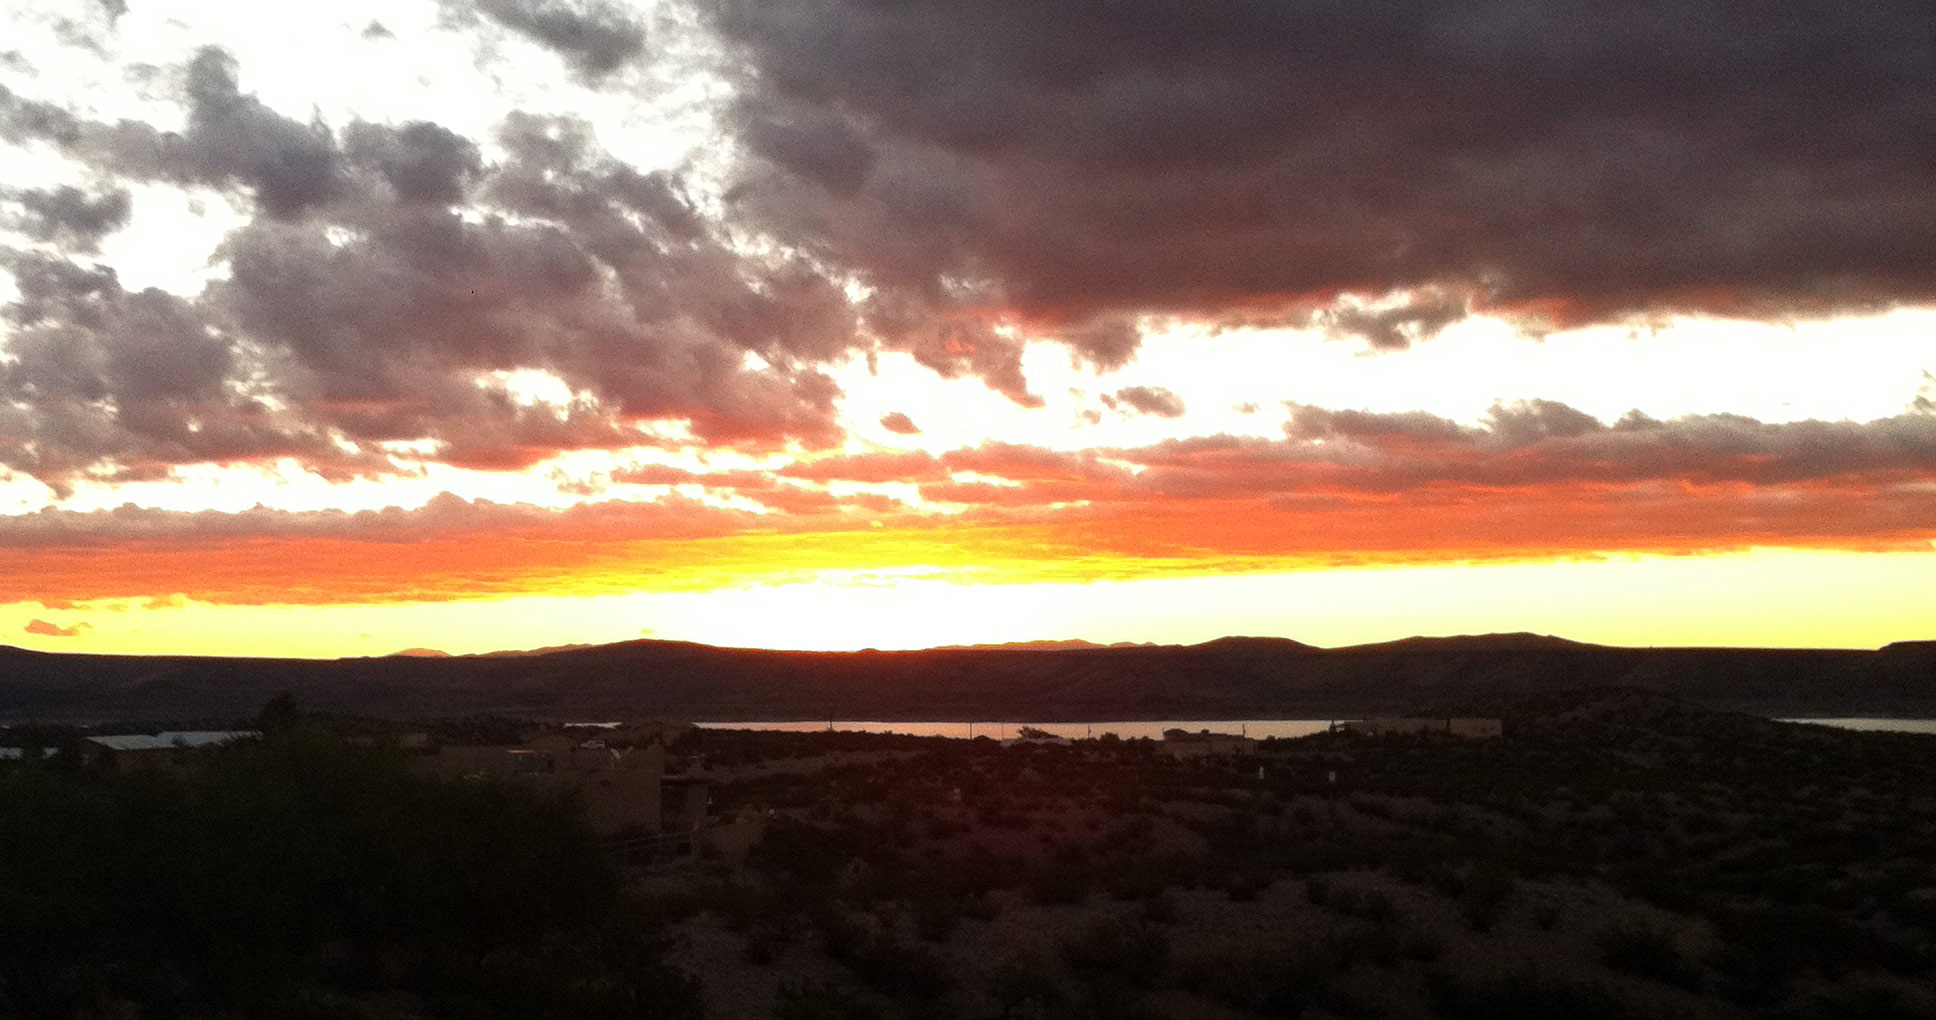 Sunrise in Elephant Butte